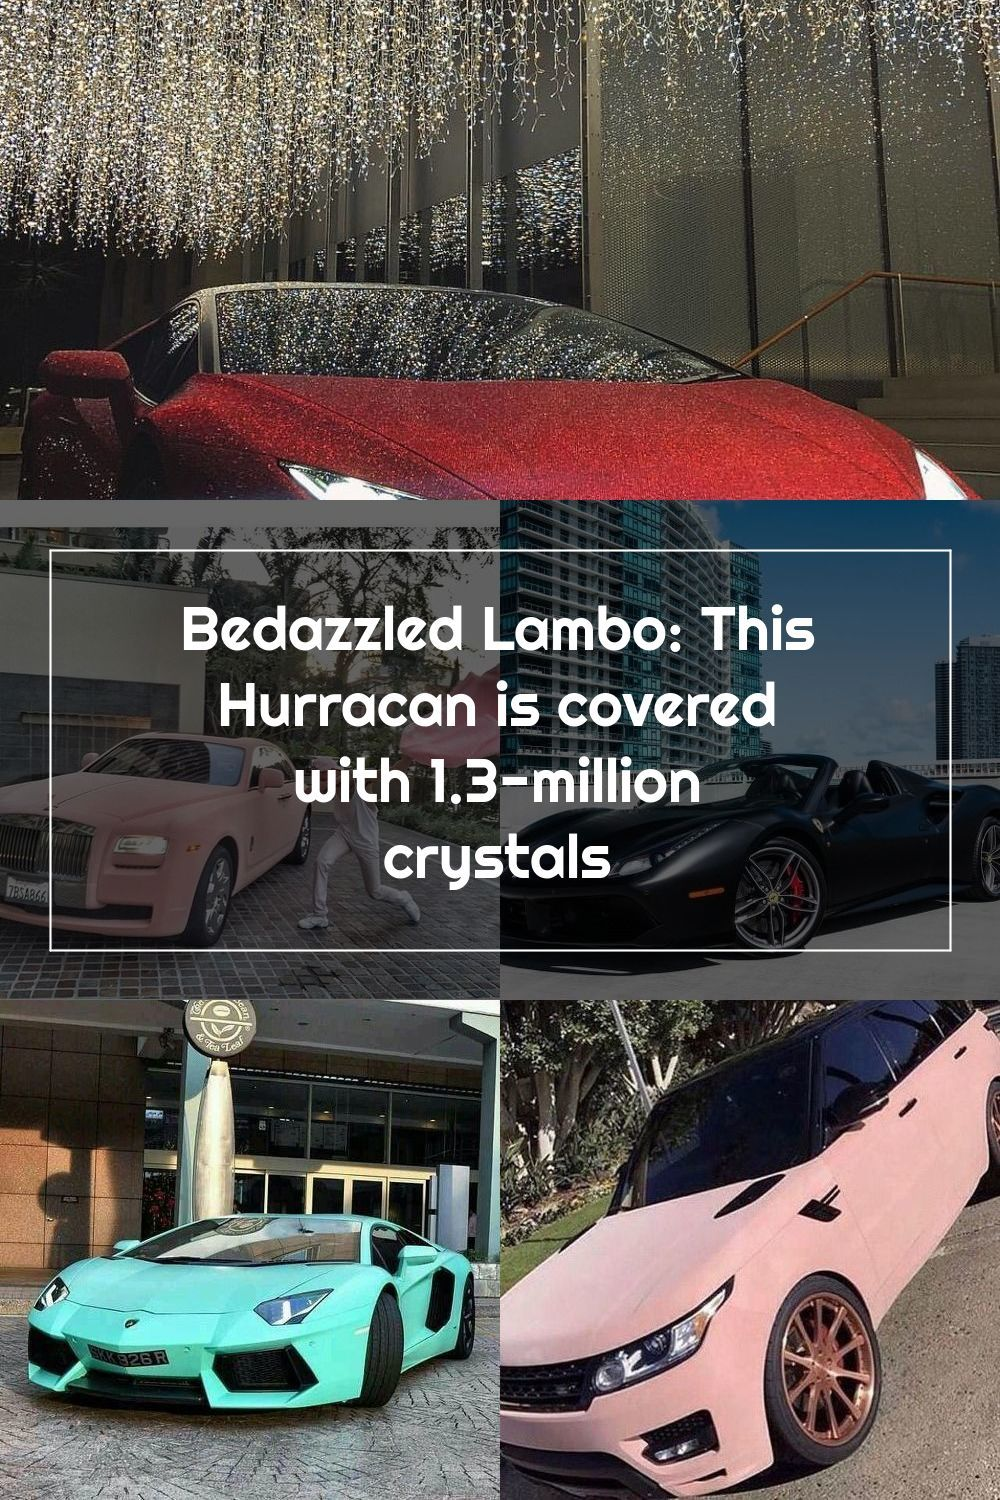 This is how you shut down a city This Hurracan is covered with 1.3-million crystals! See more at #slaylifestyle #fastcars #fastlane #lamborghini #richlist #spoiler #luxuryliving #swarovski #diamonds #redcar #hurracan #glitter 